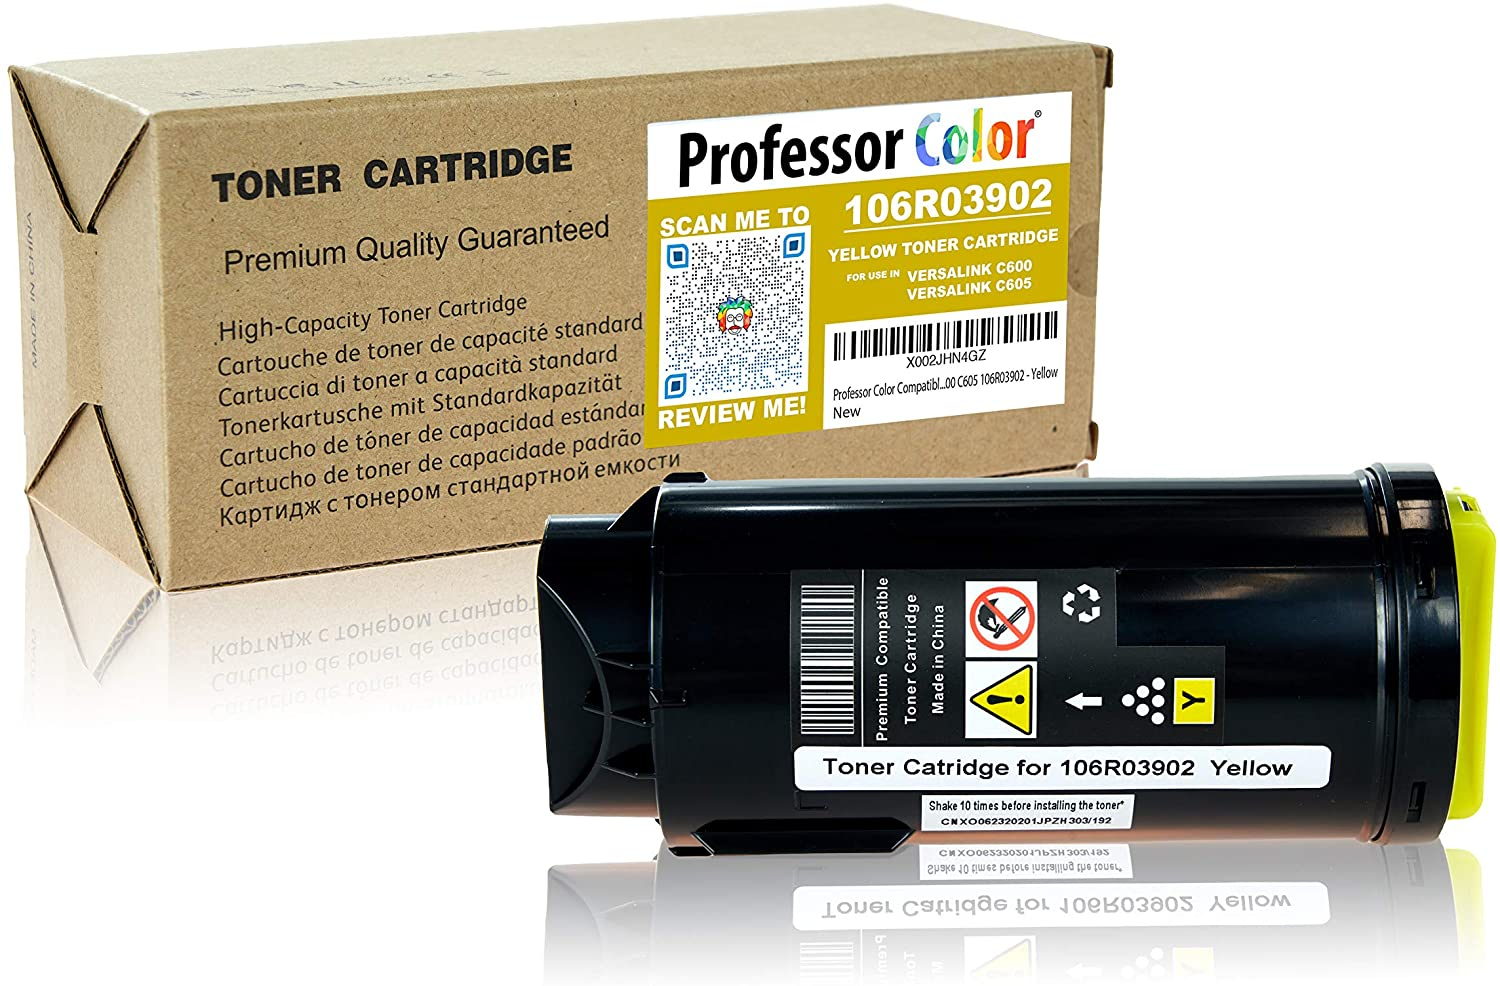 Professor Color Compatible Toner Cartridge Replacement for Xerox VersaLink C600 C605 106R03902 - Yellow